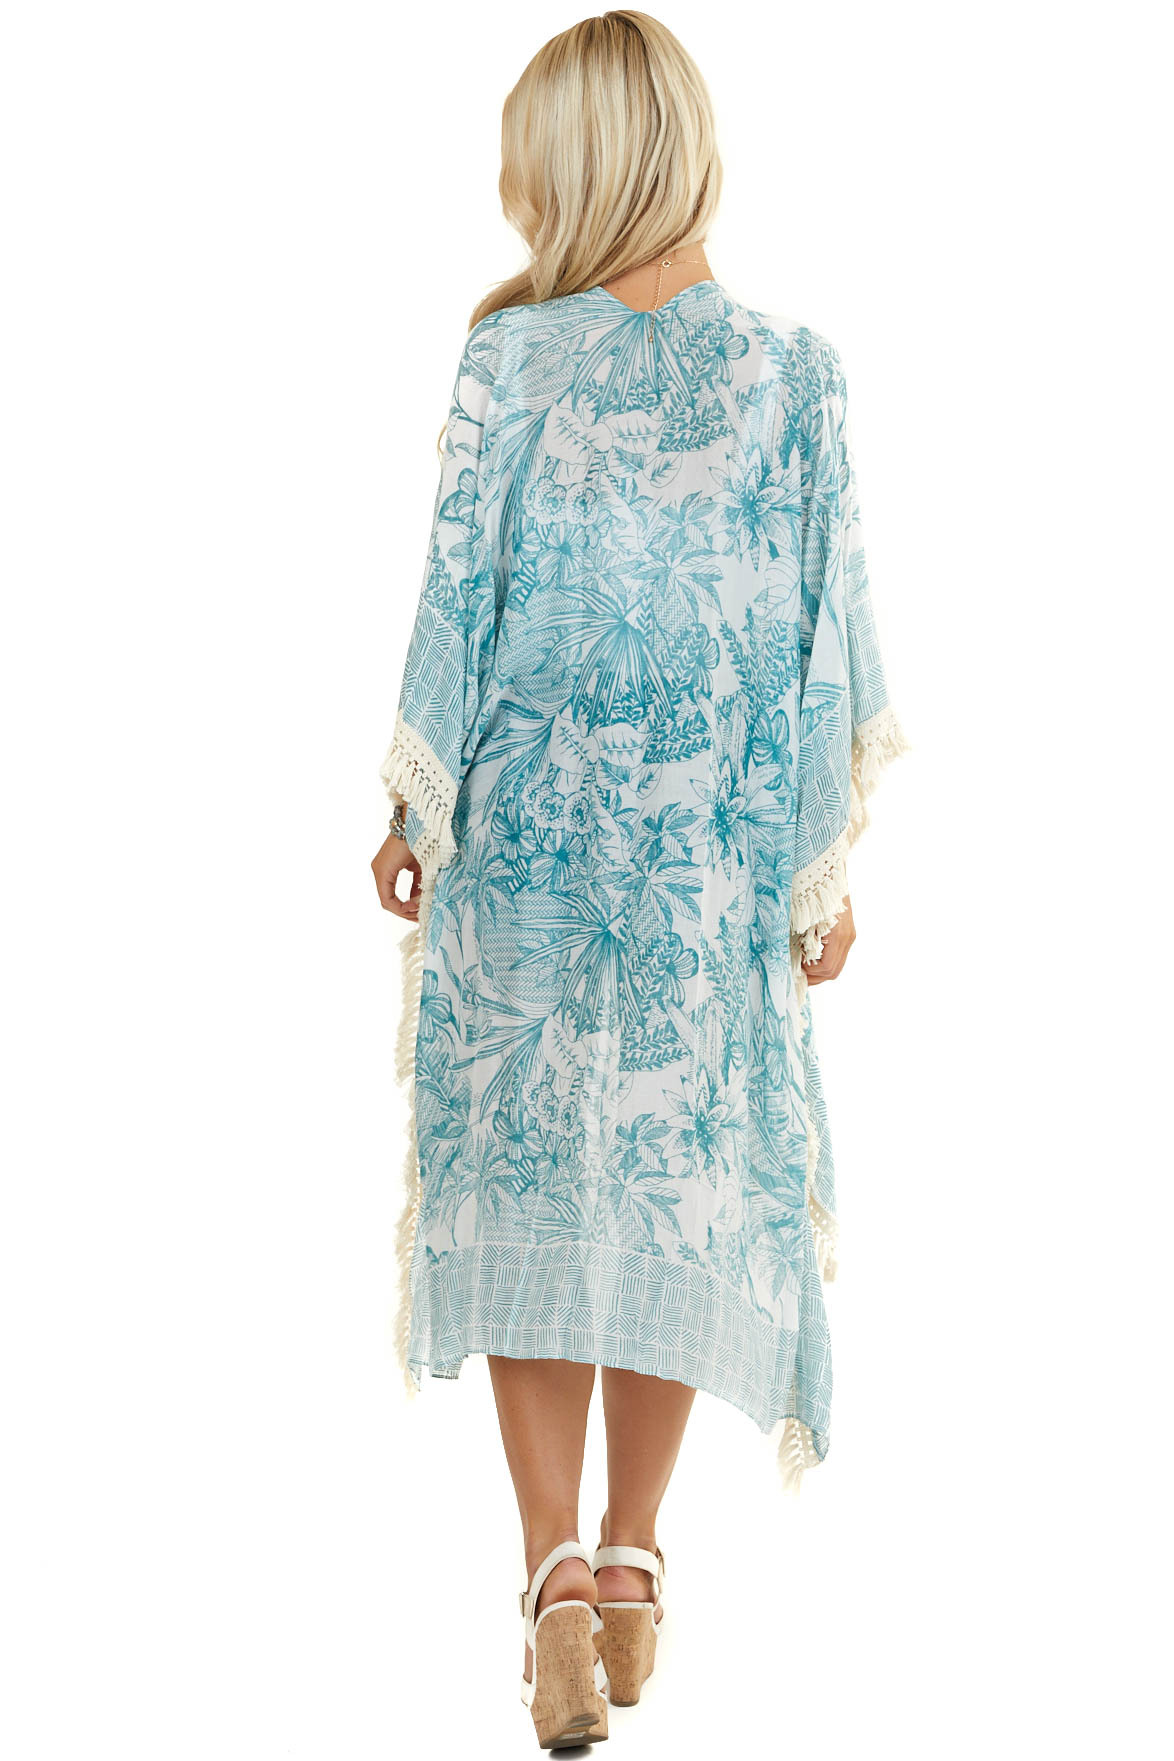 Teal and Sky Blue Floral Print Kimono with Tassel Details